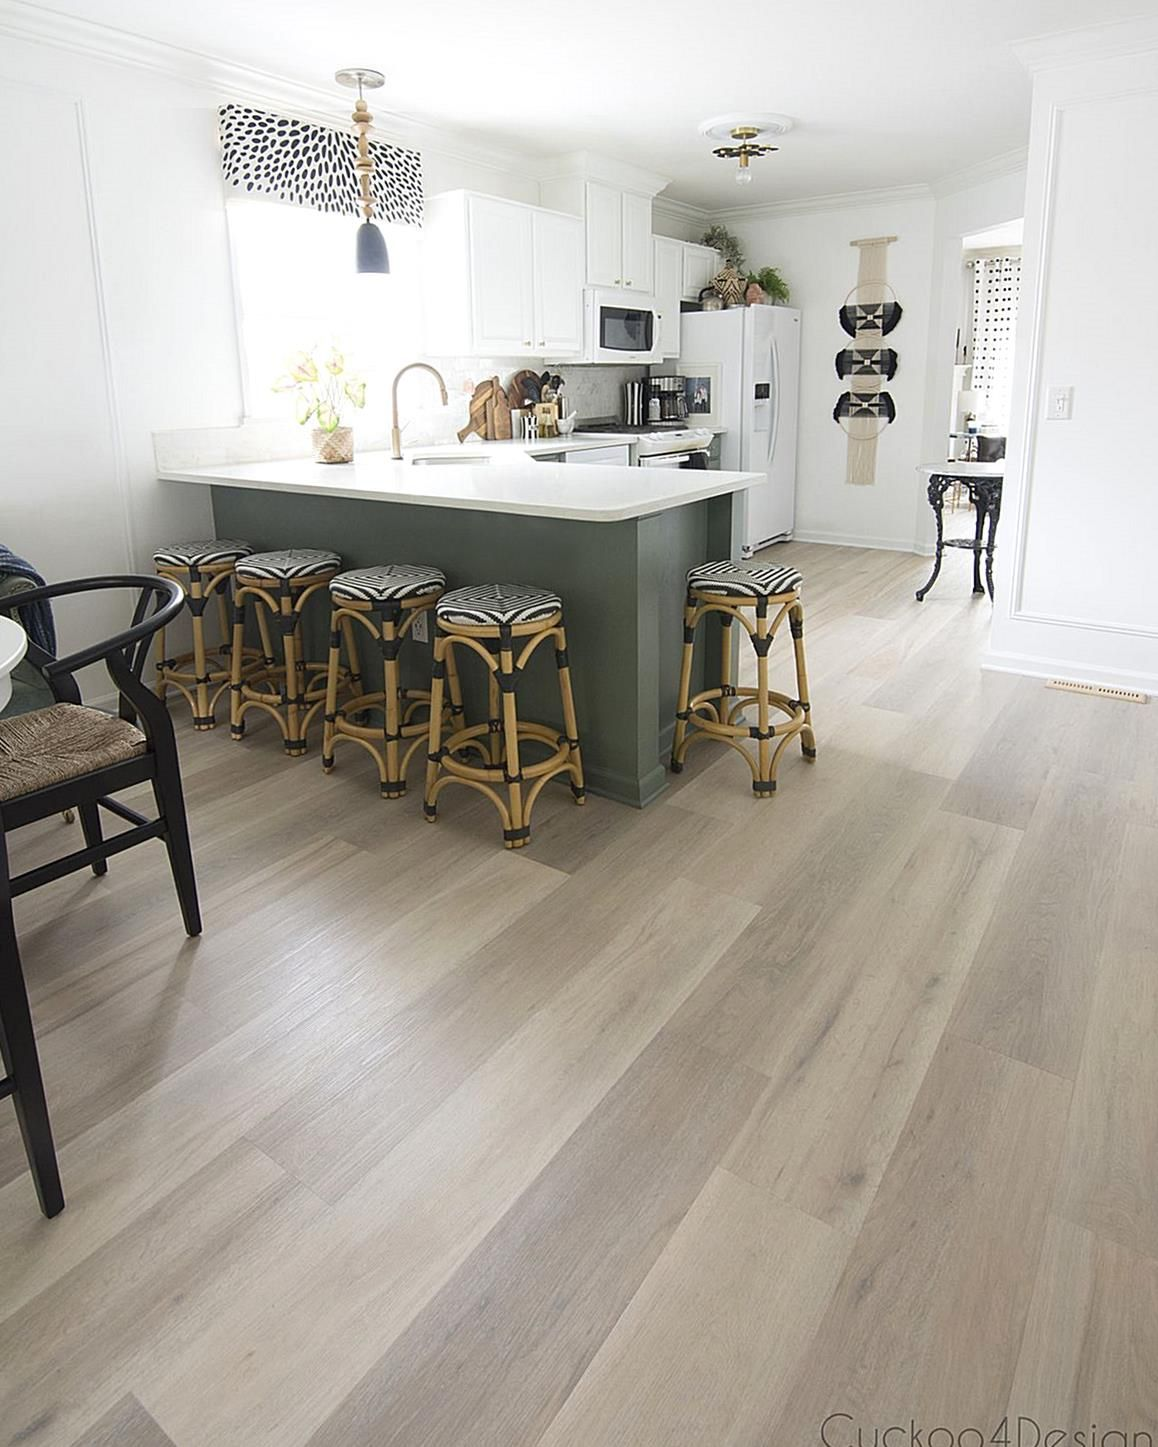 Im sharing all my reasons for choosing lightcolored Karndean vinyl wood plank fl...